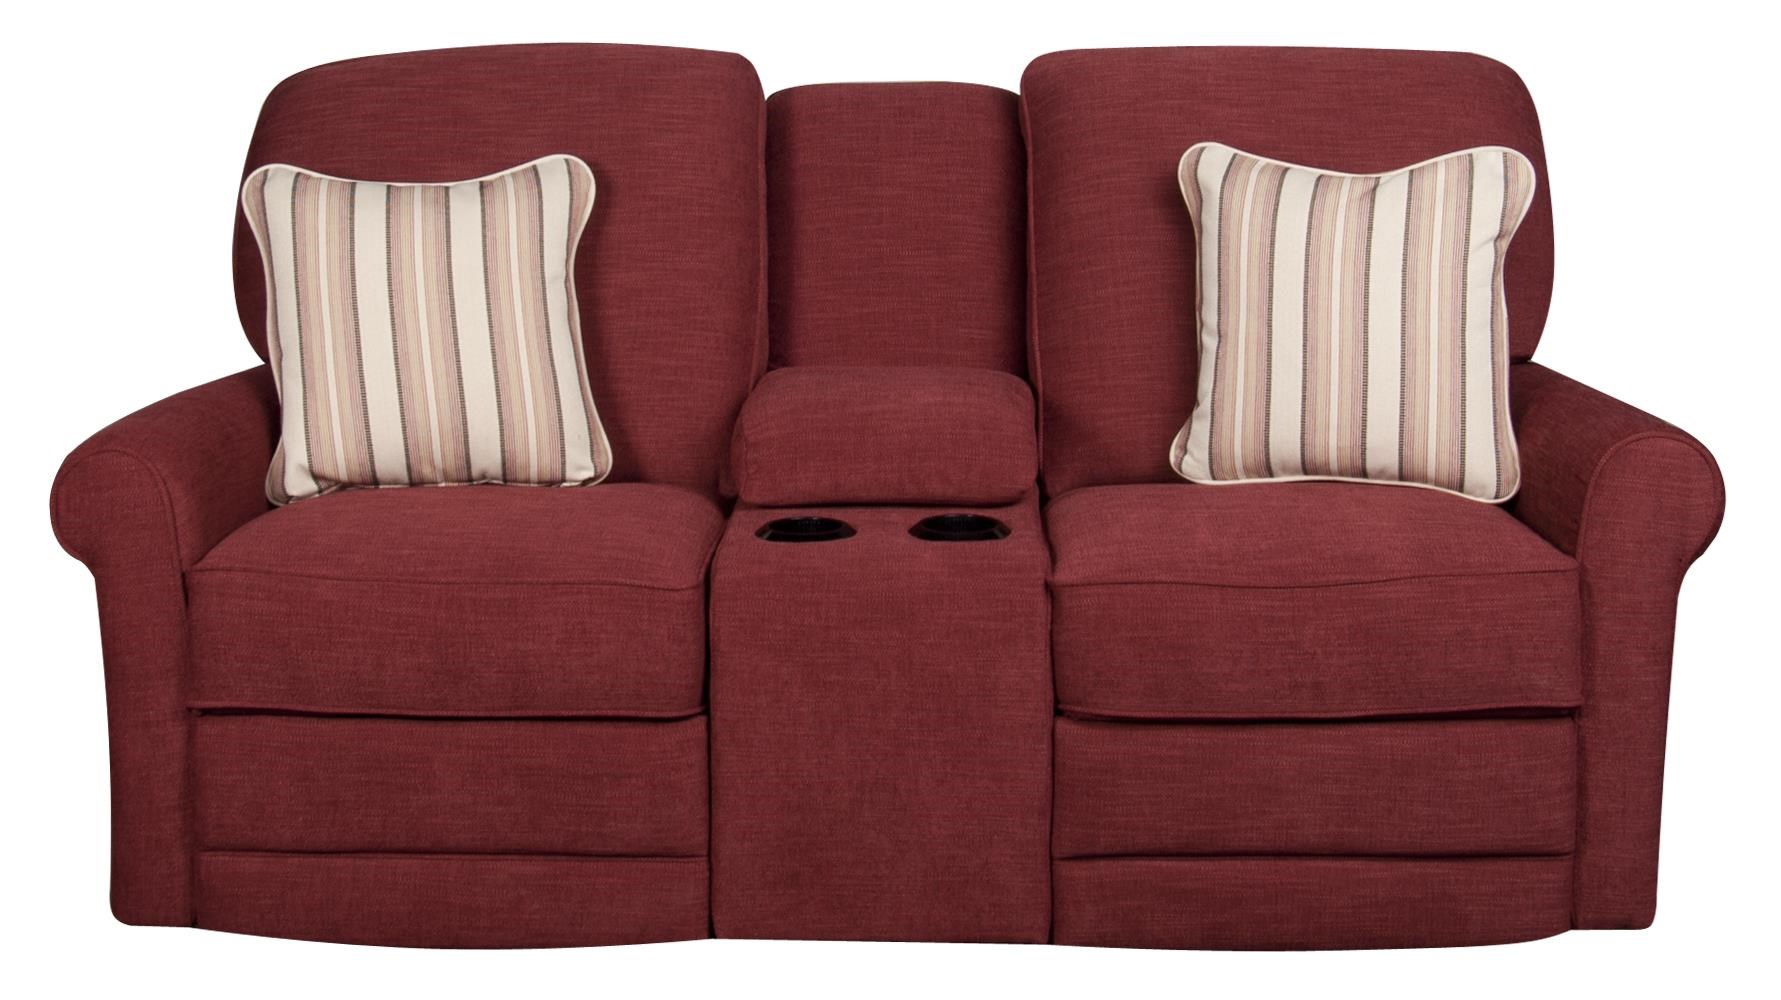 La-Z-Boy Addison Addison Power Loveseat with Console - Item Number: 464143379